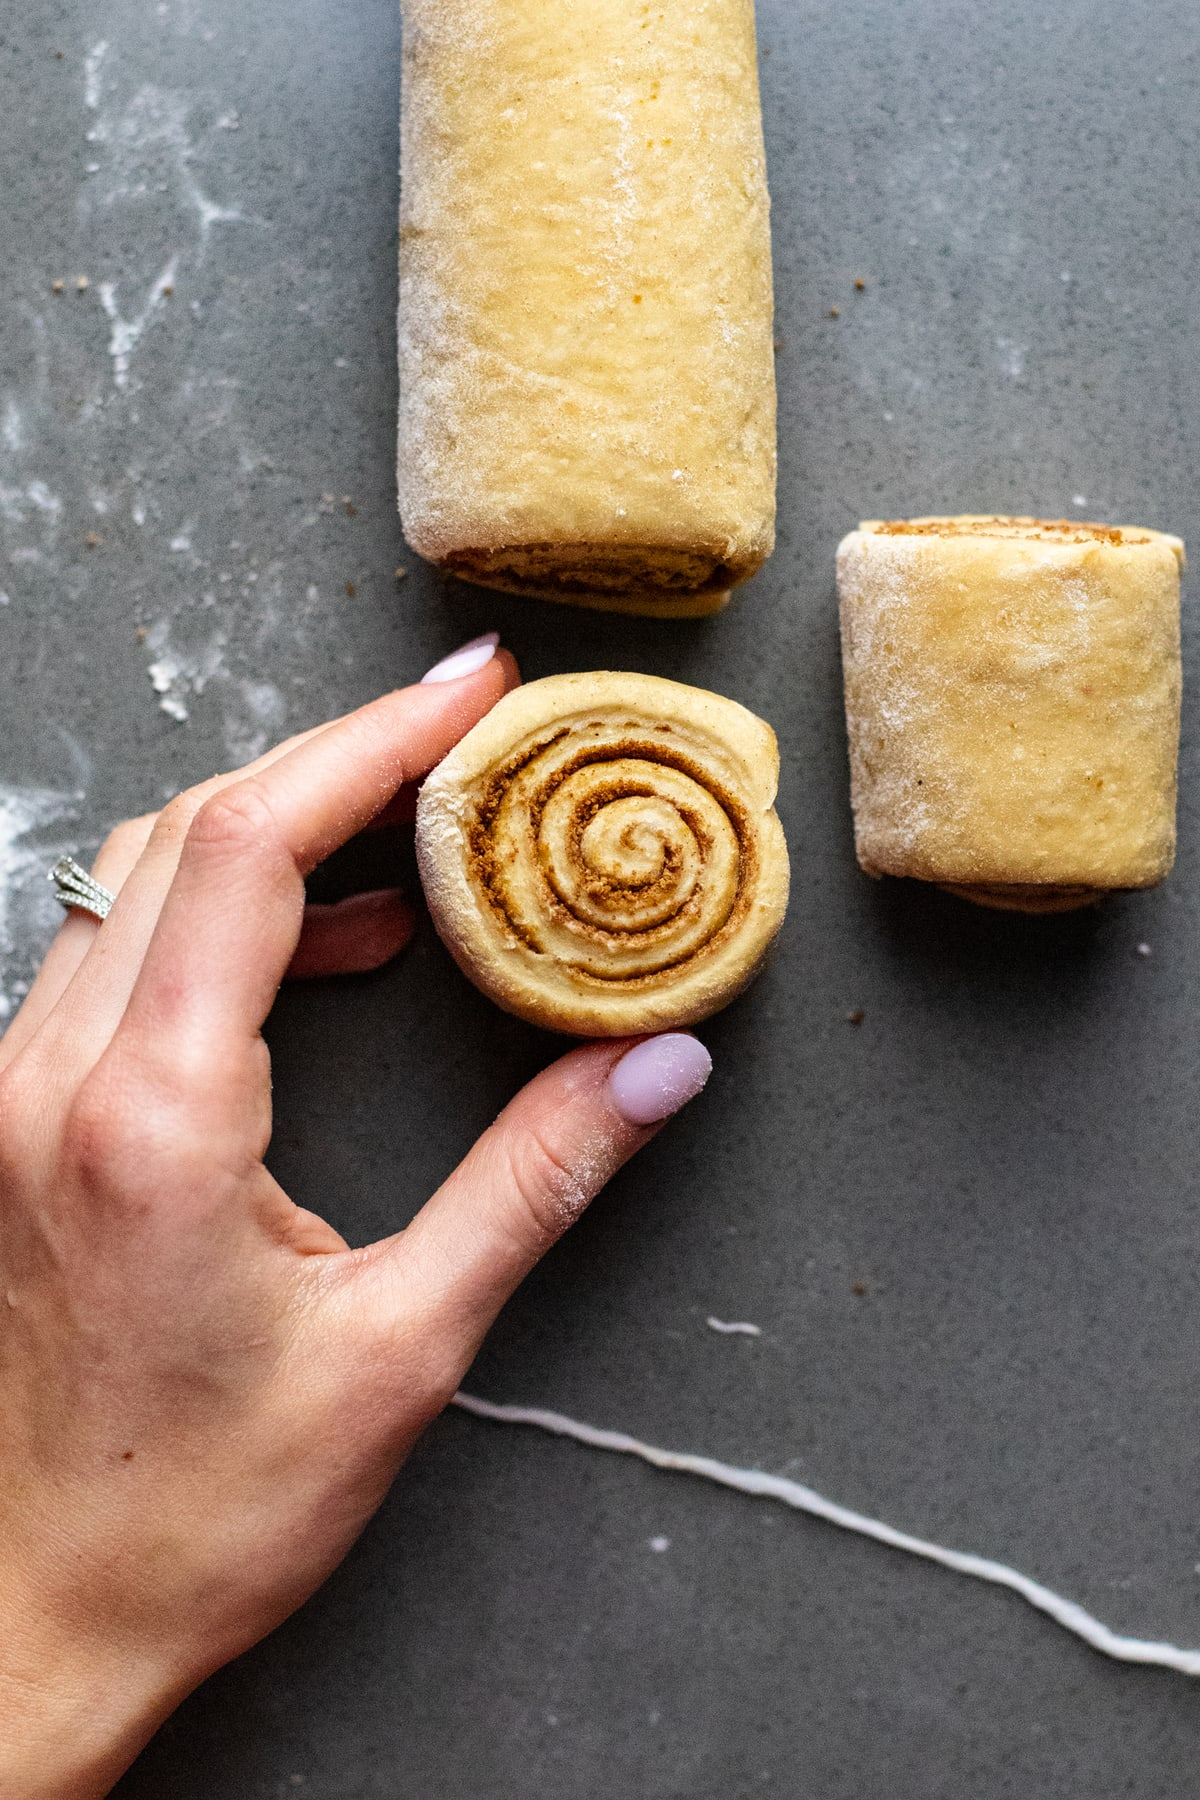 hand holding cinnamon roll spiral on gray counter.